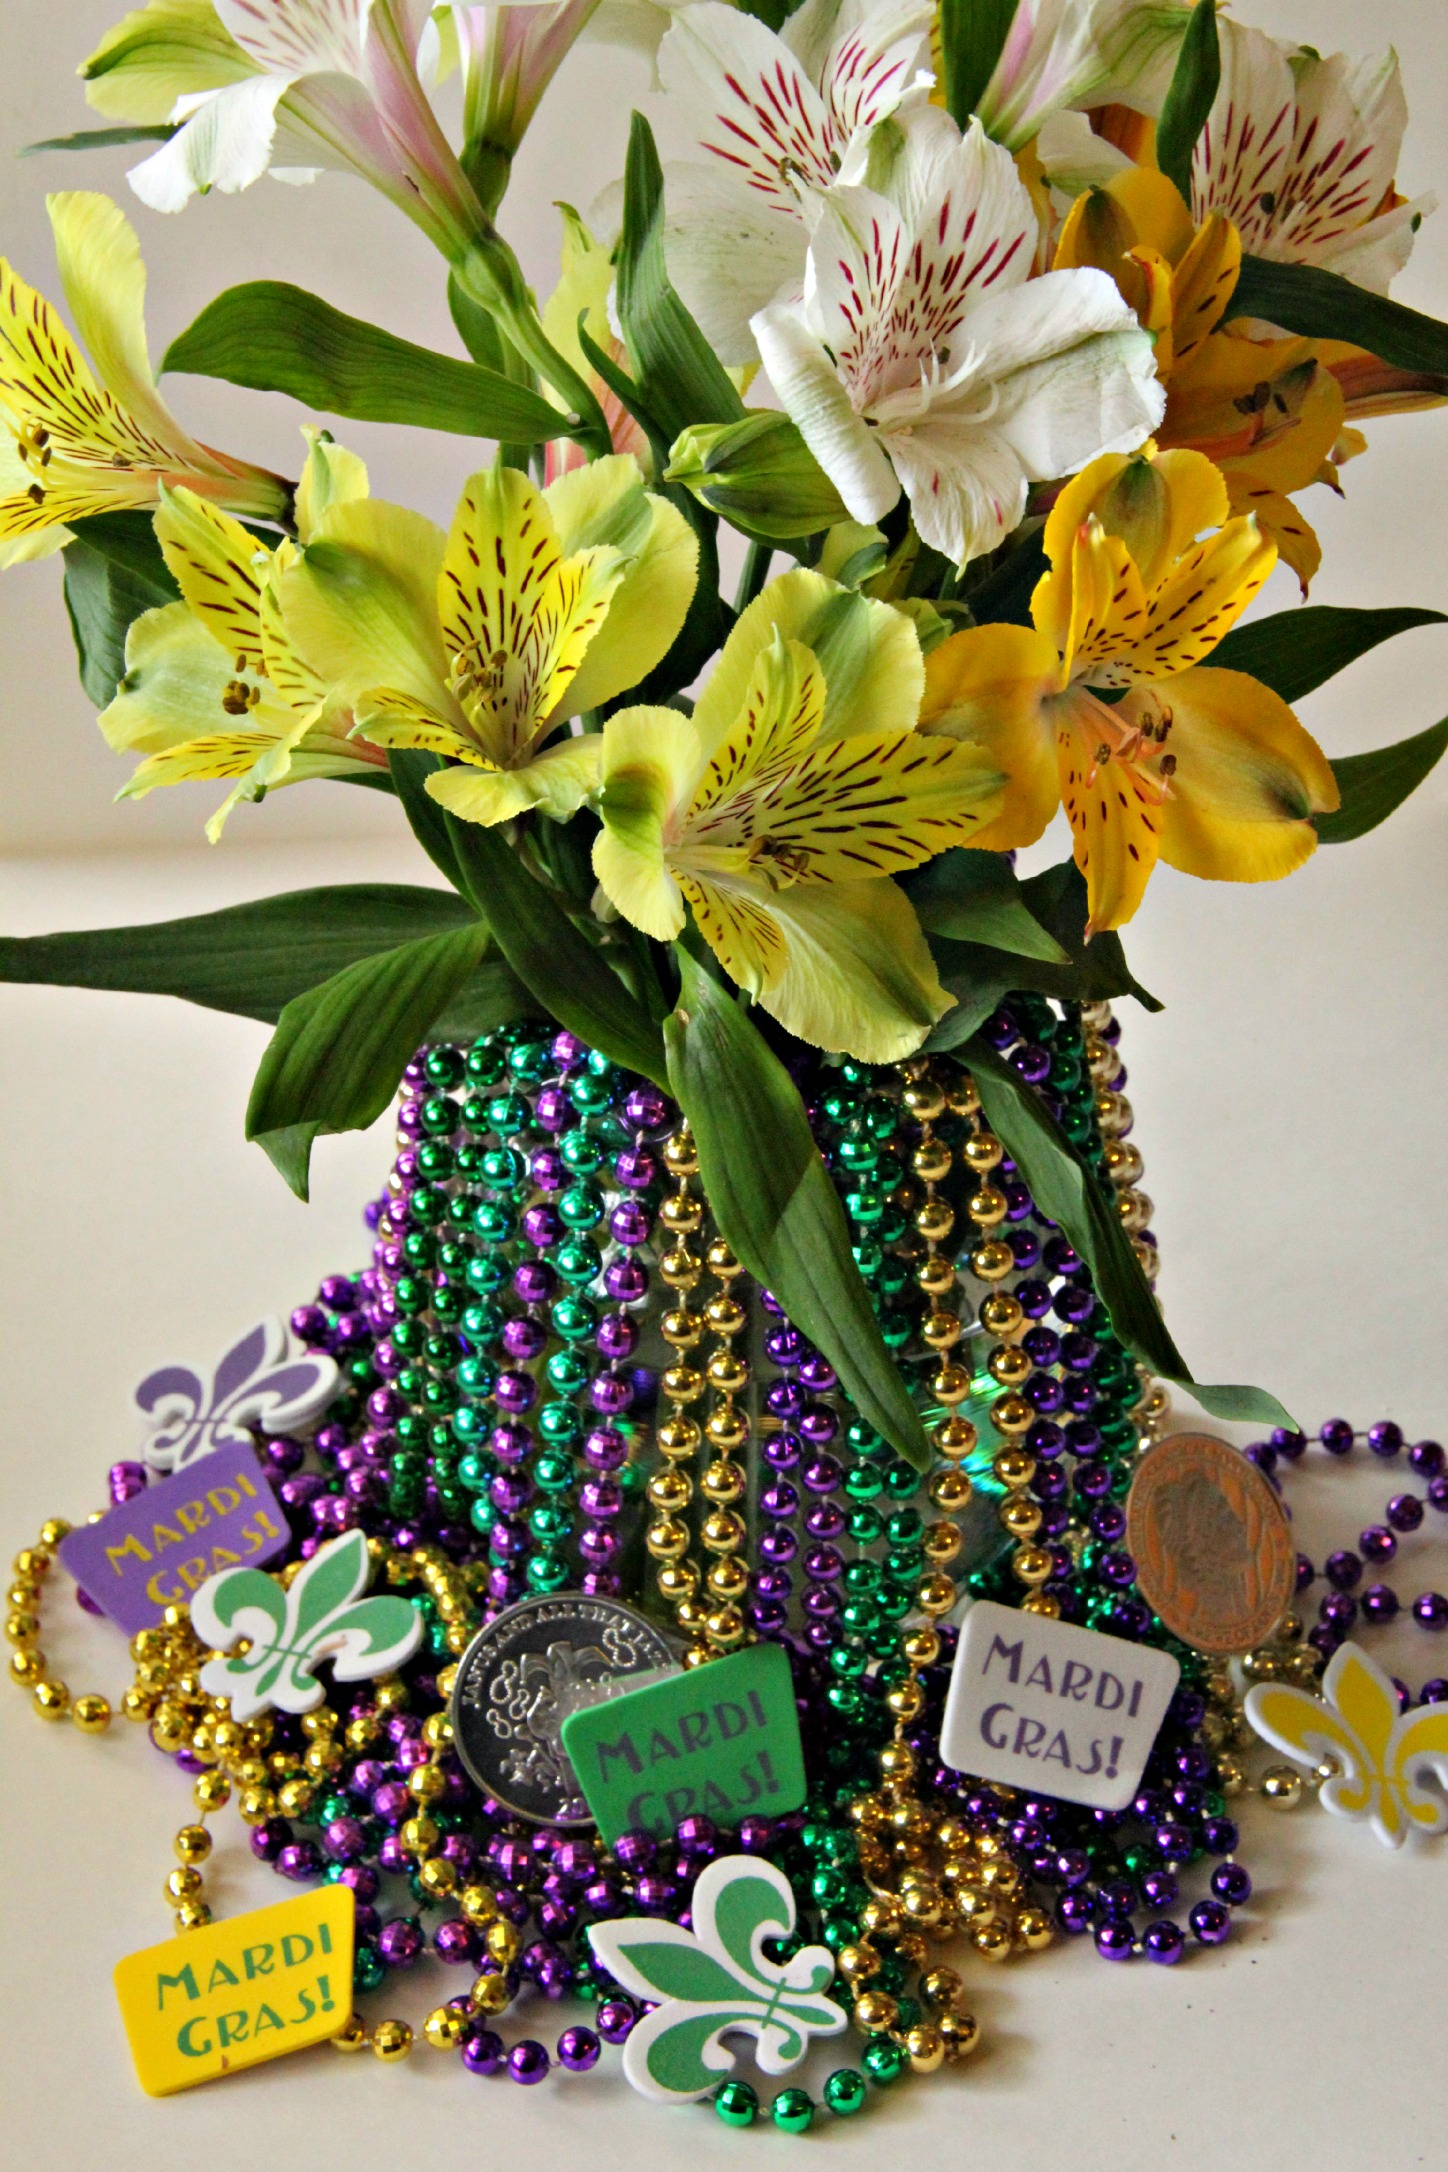 Mardi Gras Decoration Centerpiece